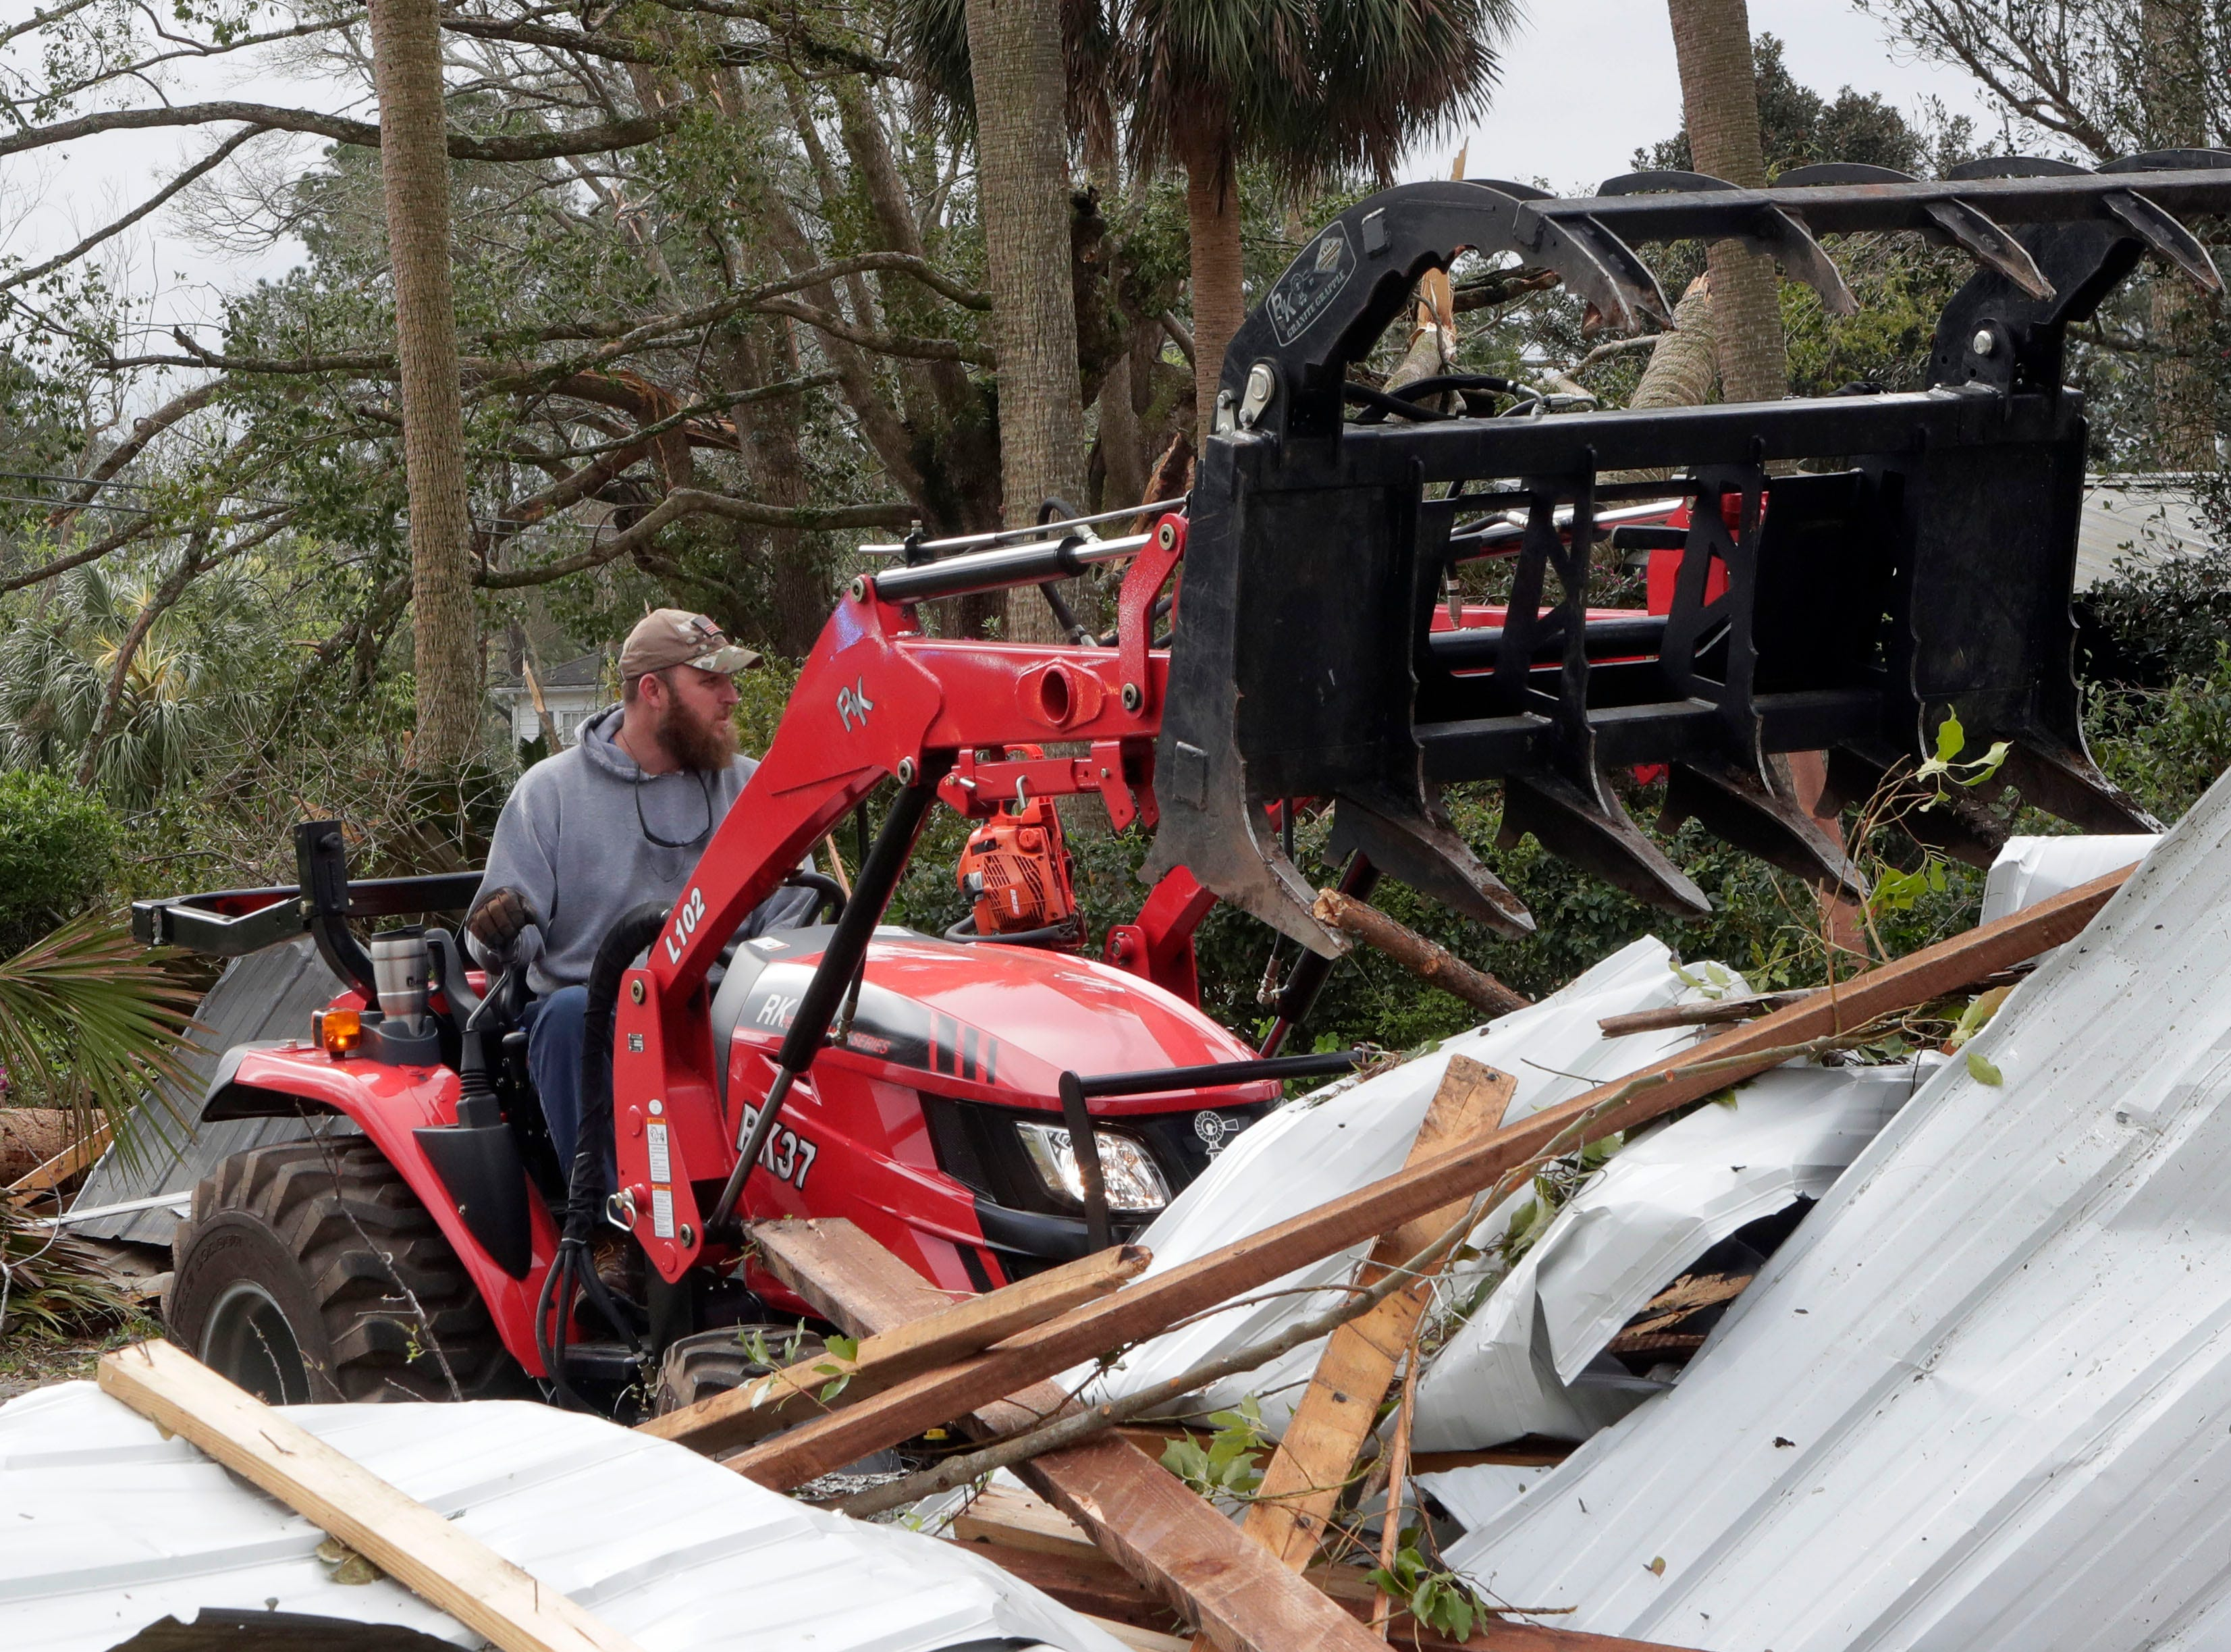 Jeremy Adams volunteers his time to help clean up debris in Cairo, Ga. on March 4, 2019.